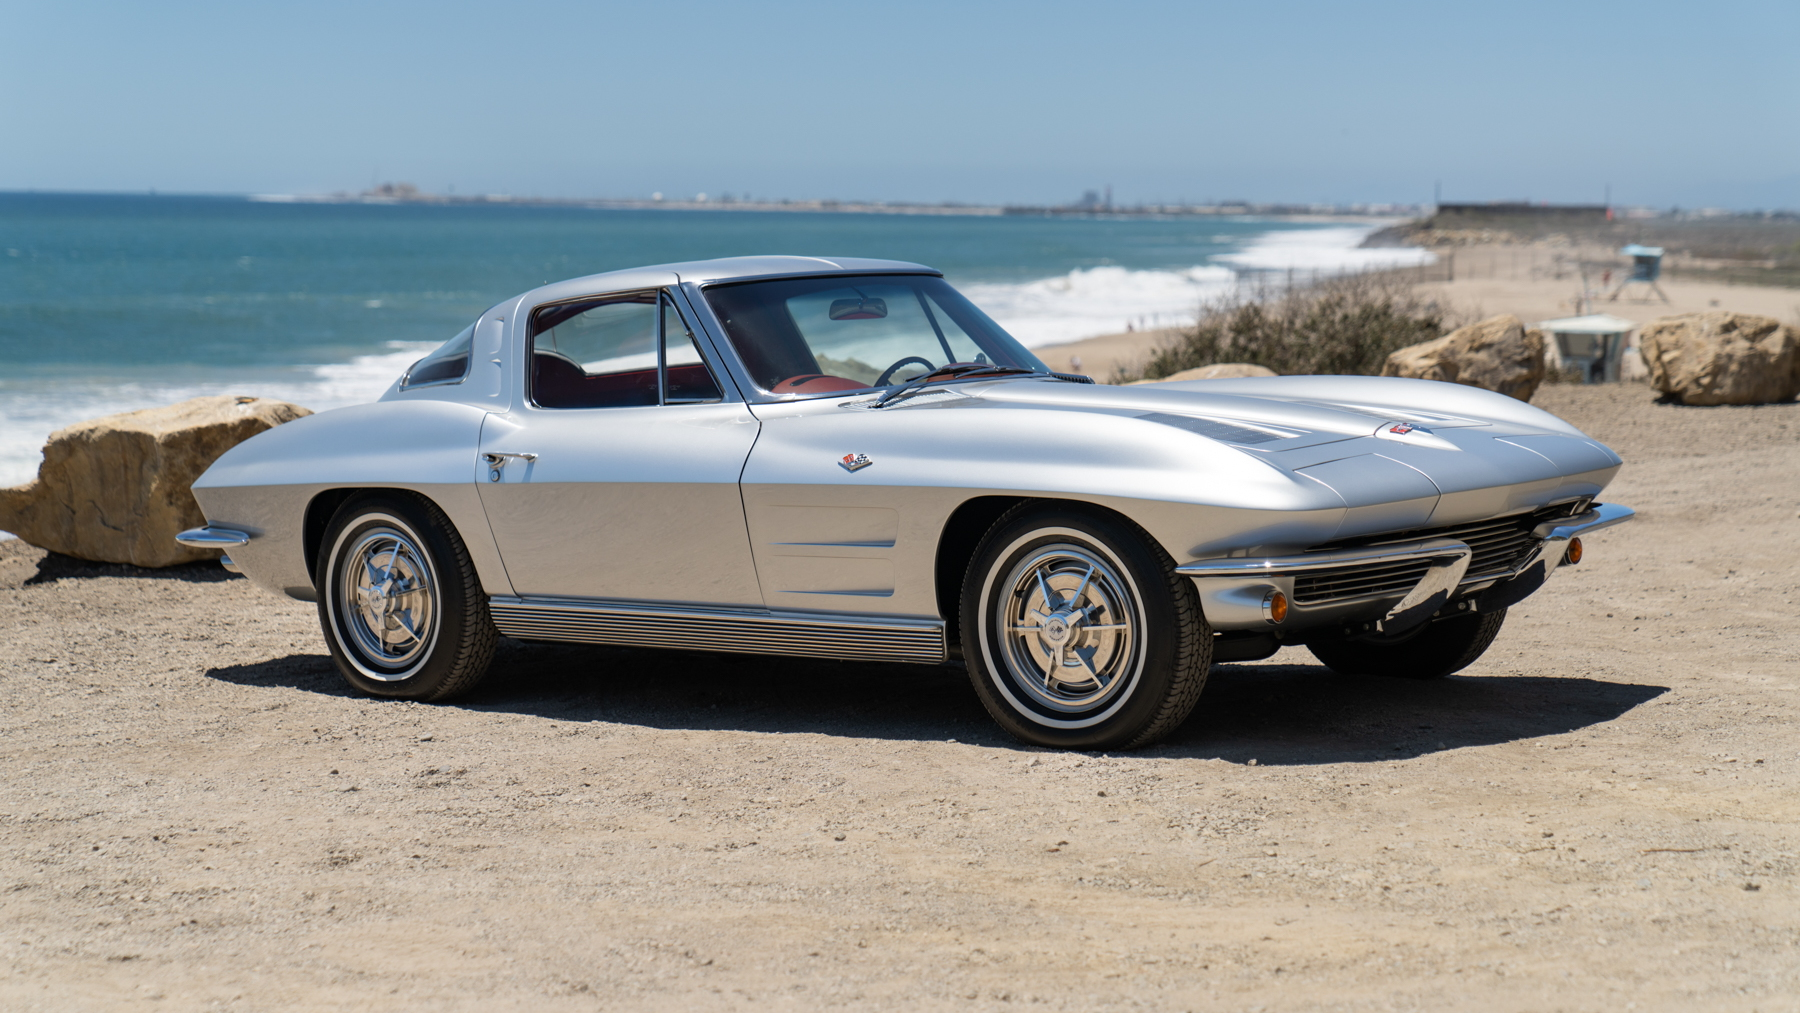 Neil Peart's 1963 Chevy Corvette, image courtesy of Gooding & Company. Photo by Mike Maez.